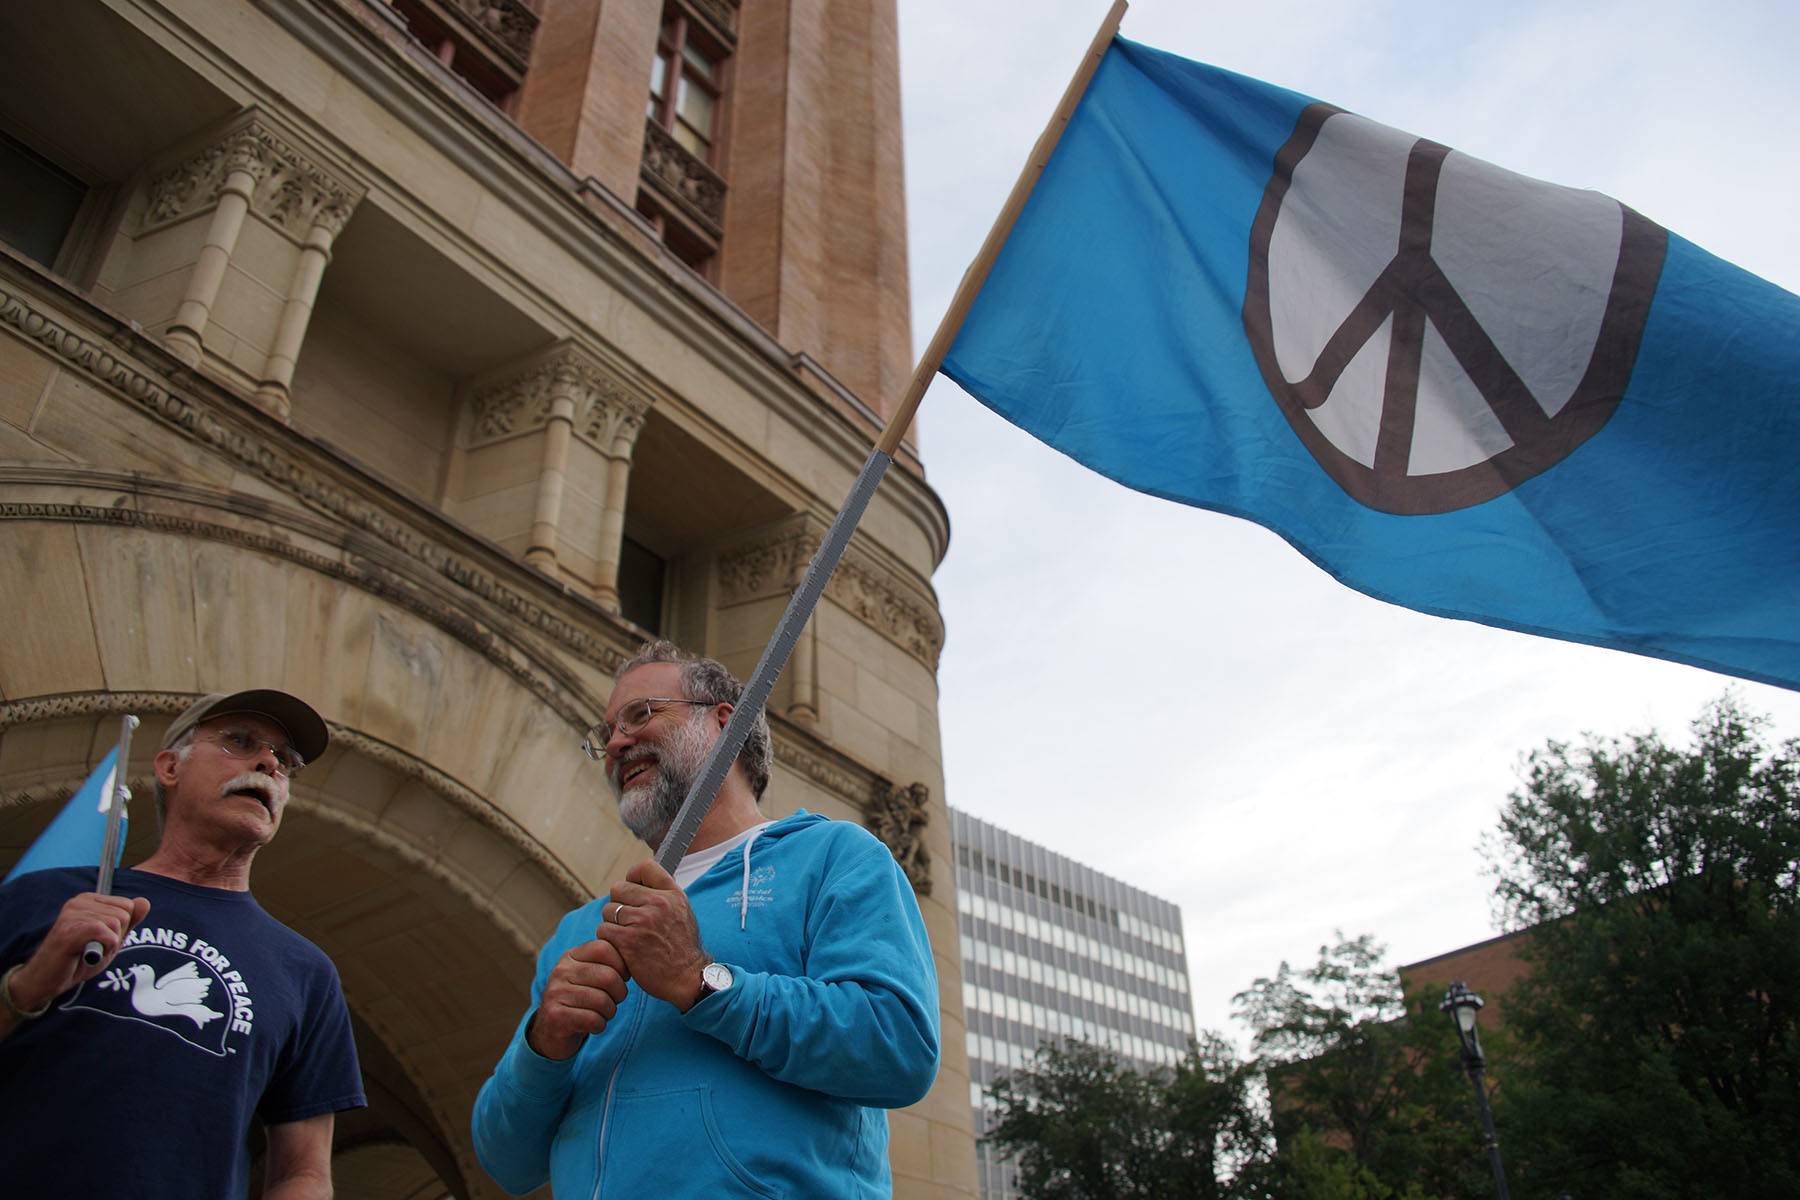 092116_peacemarch_054